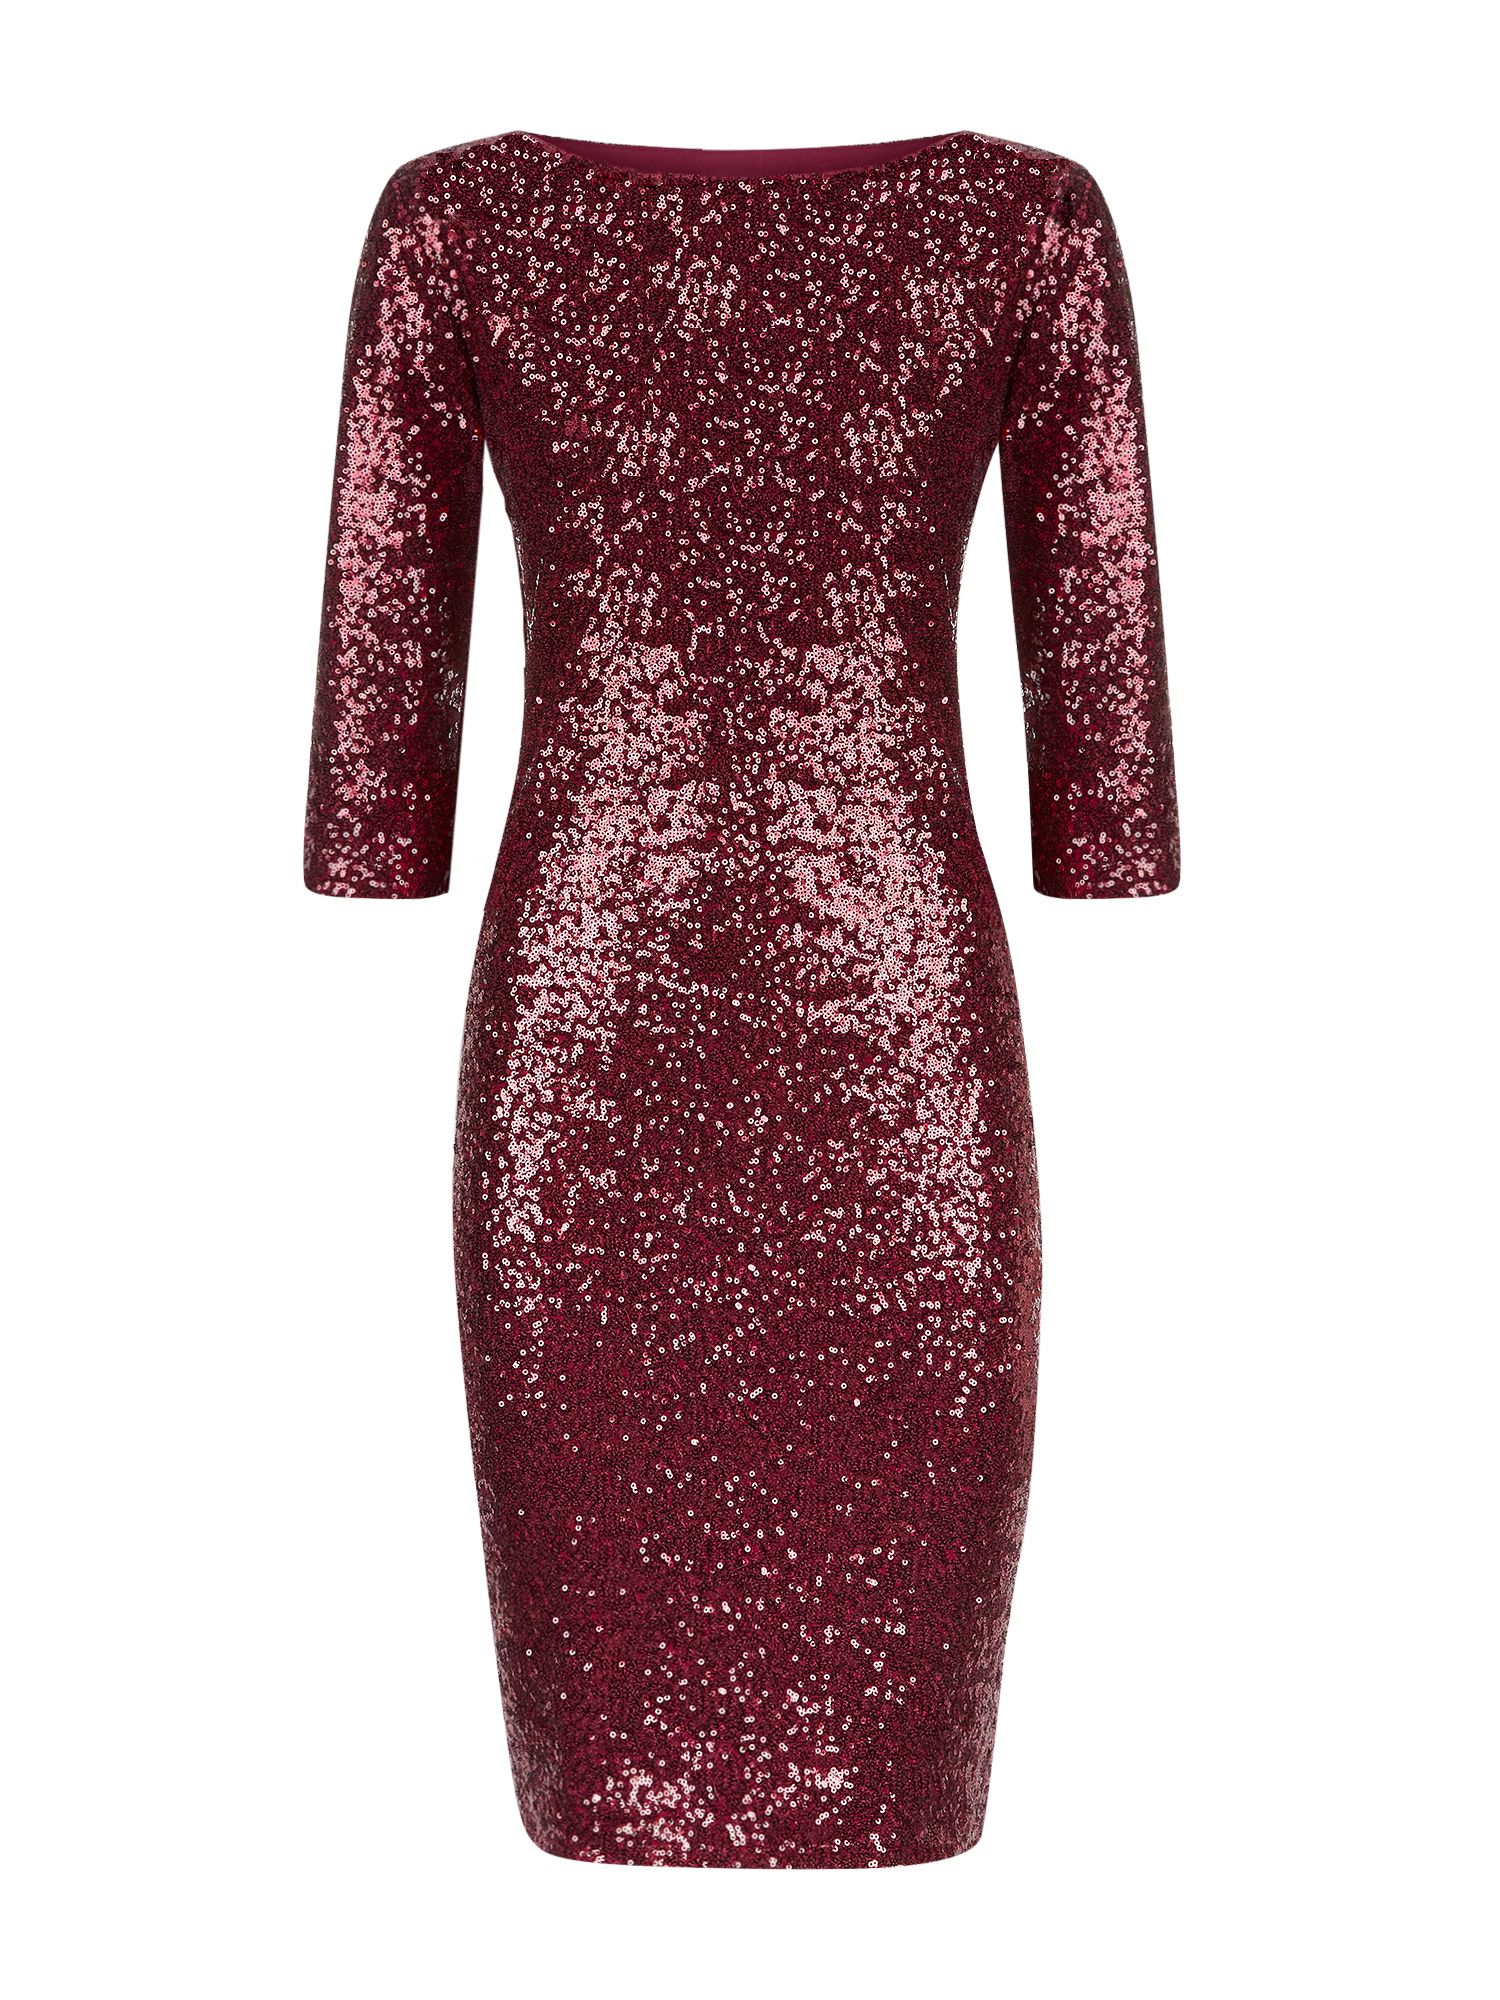 HotSquash Long Sleeved Dress With Sequin Trim, Wine